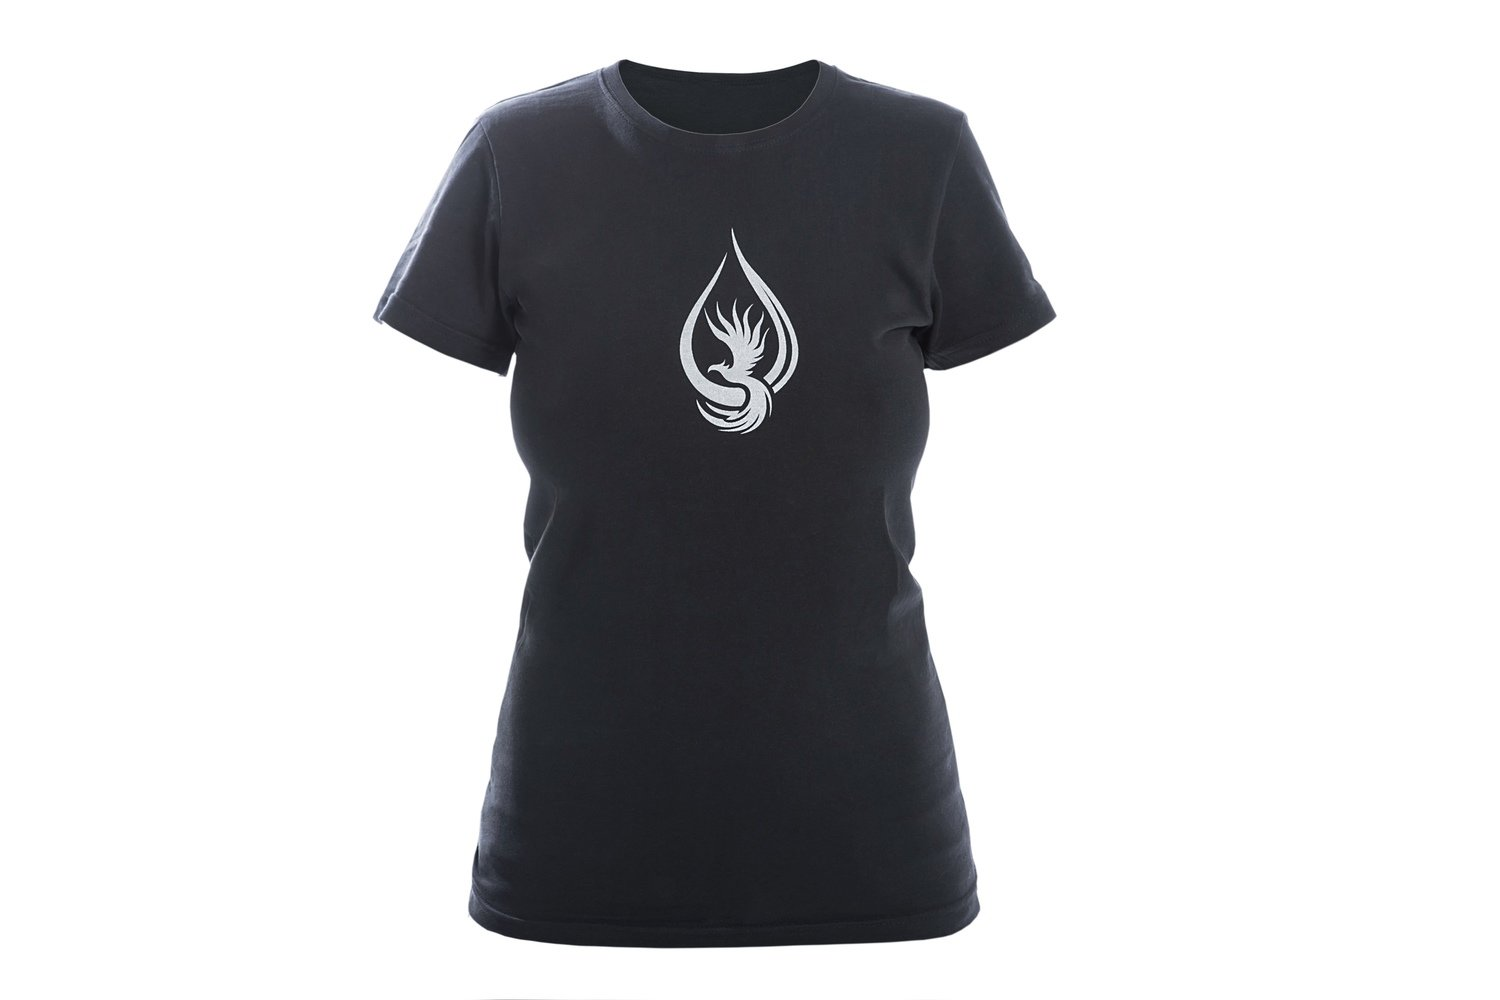 T-shirt WOMAN Black/Silver